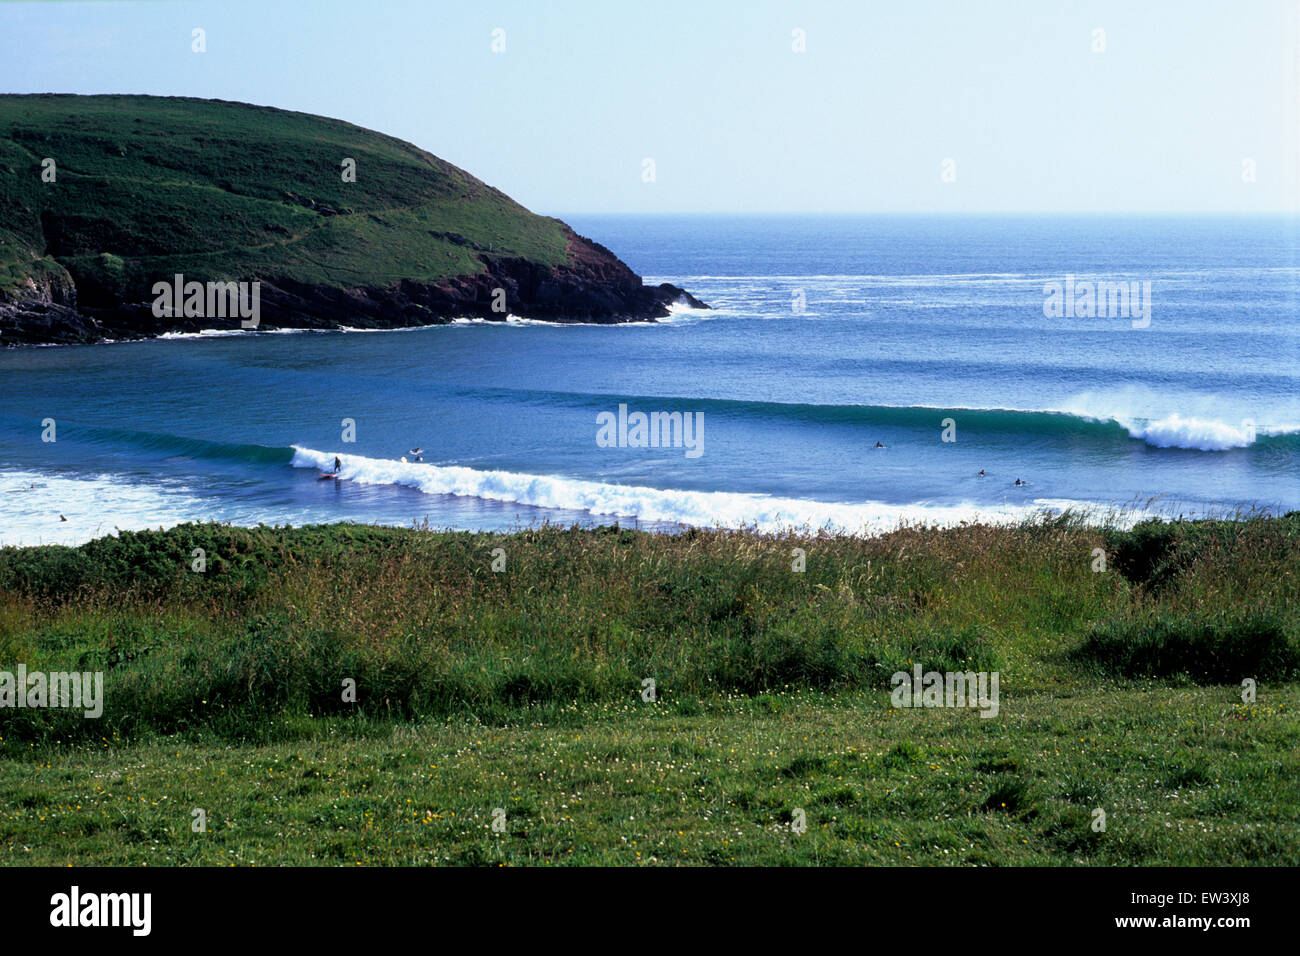 Sheltered from the wind but facing the Atlantic  swells perfect surfing waves peel into the bay at  Manorbier, west - Stock Image